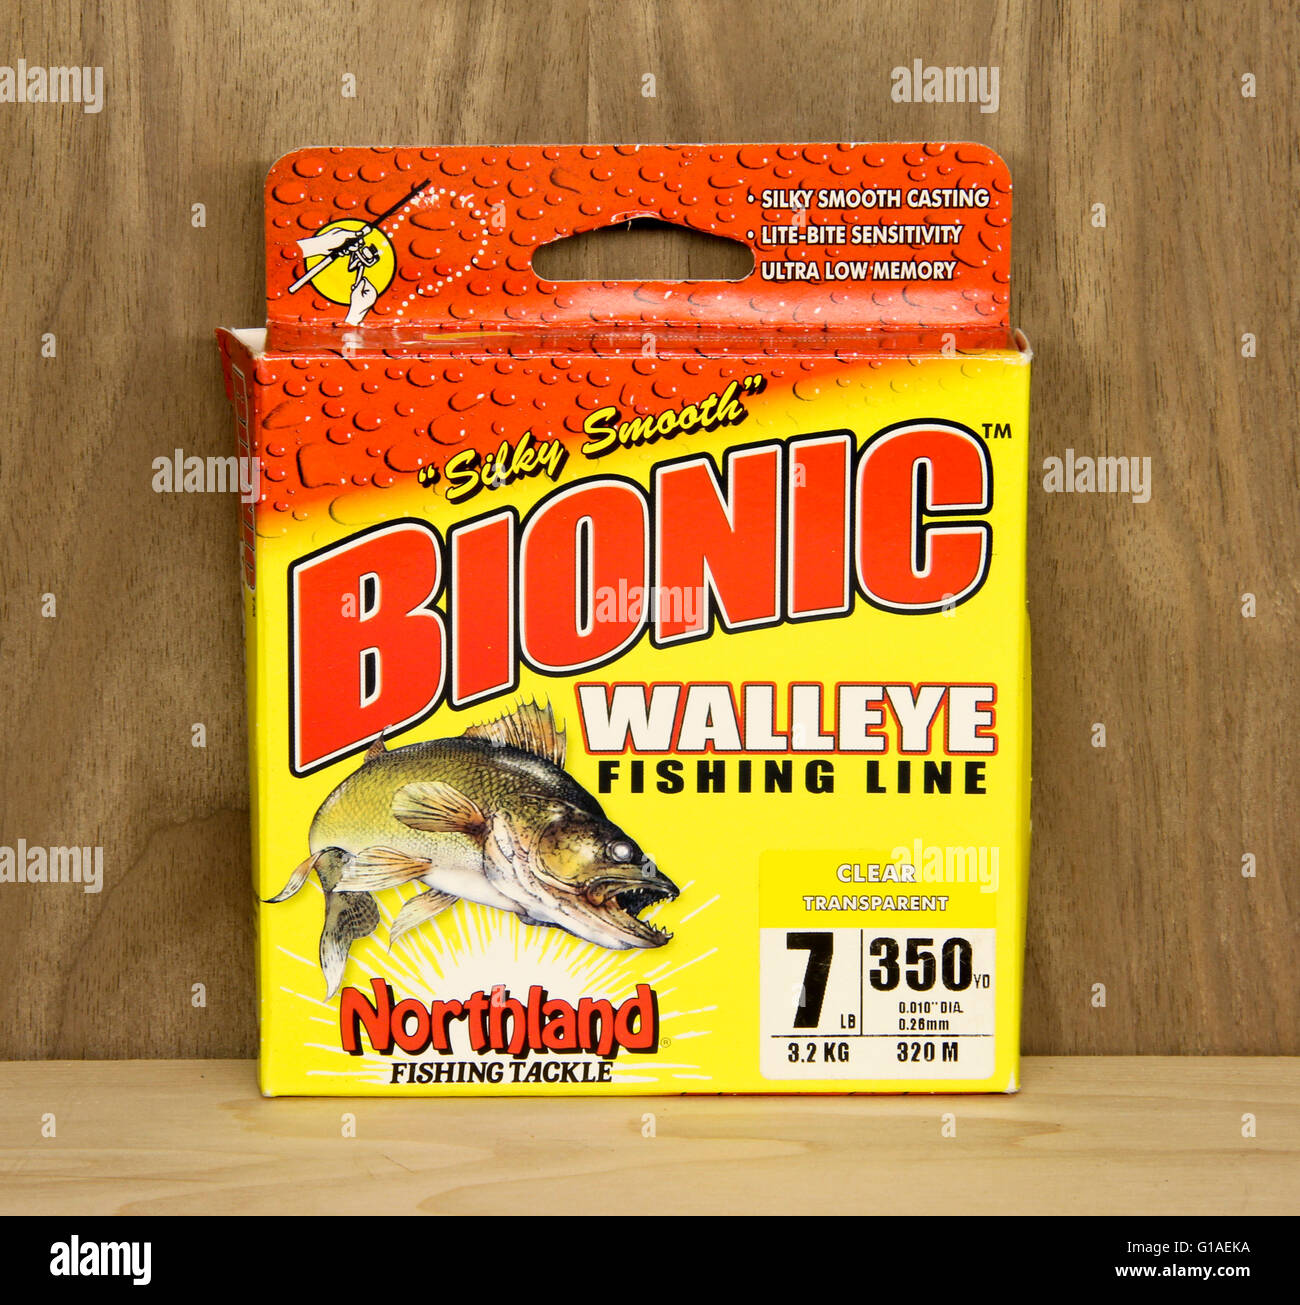 Spencer, Wisconsin, May, 10, 2016   Box of Bionic Walleye Fishing Line  Bionic is a product of Northland Fishing - Stock Image